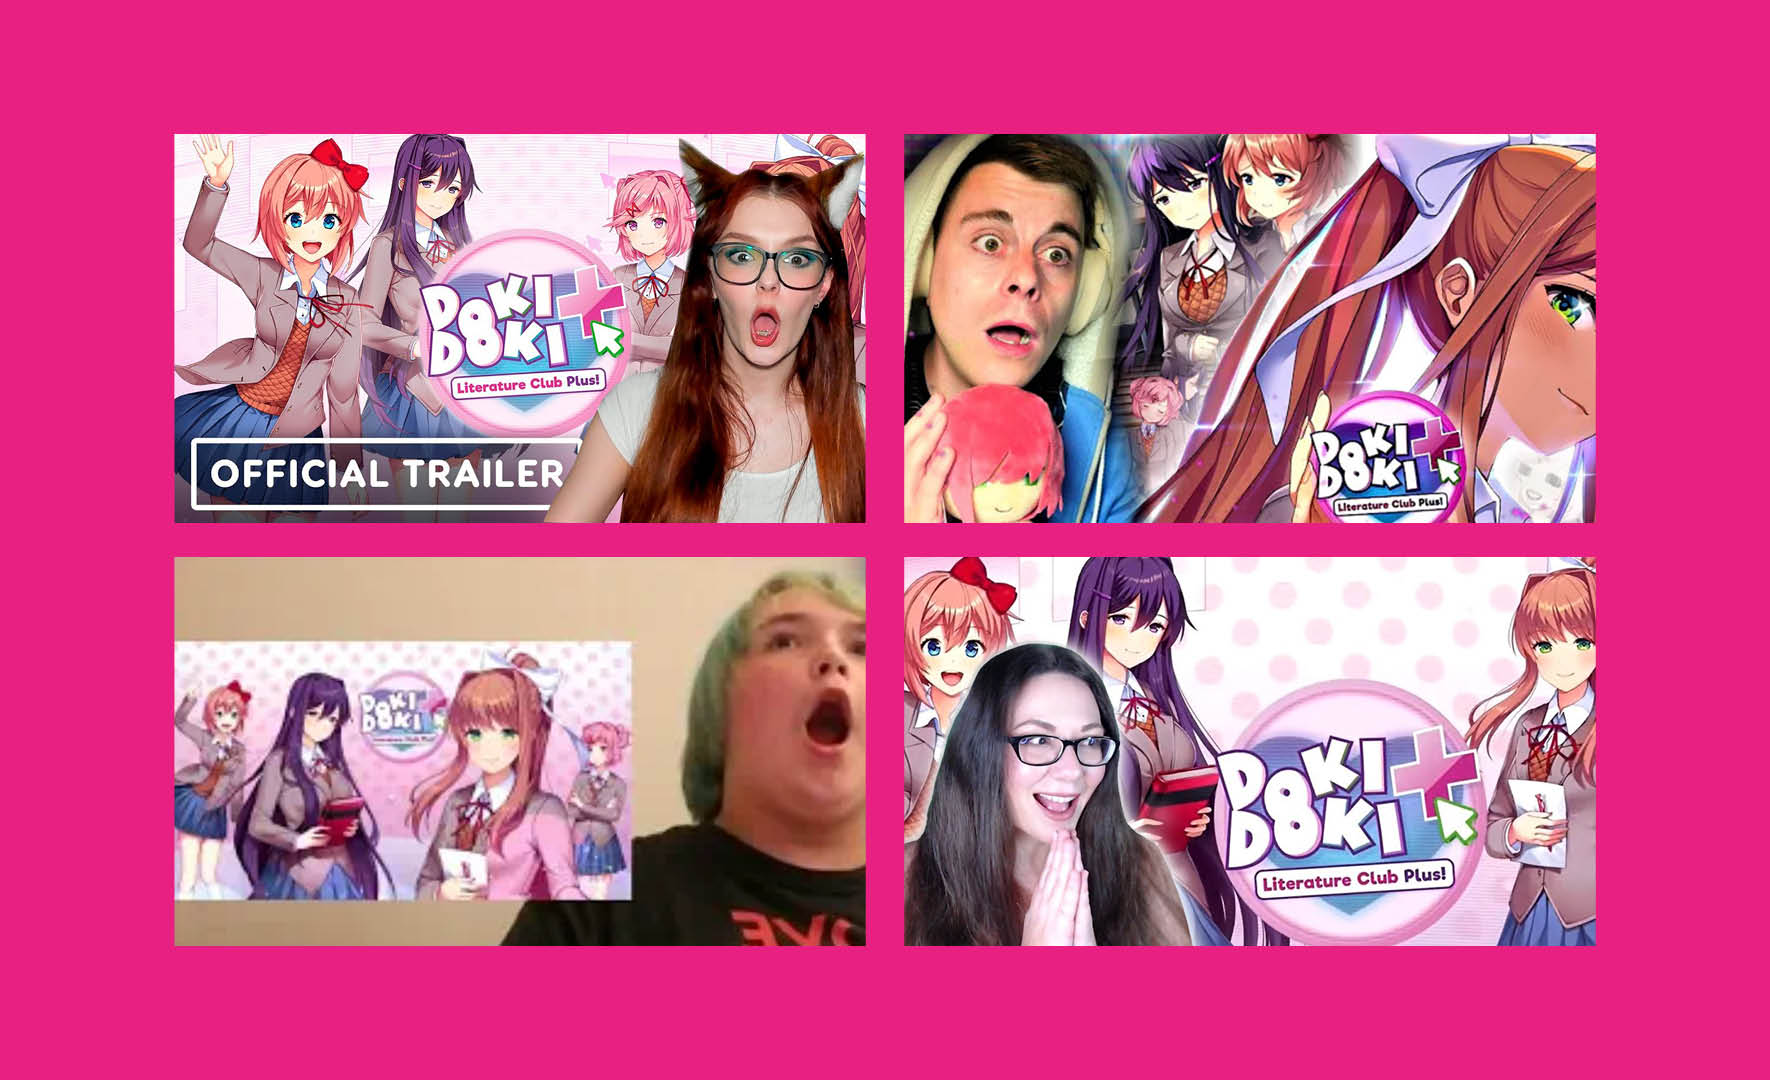 Pictures of fans from YouTube reacting on the Doki Doki Litterature Club Plus trailer